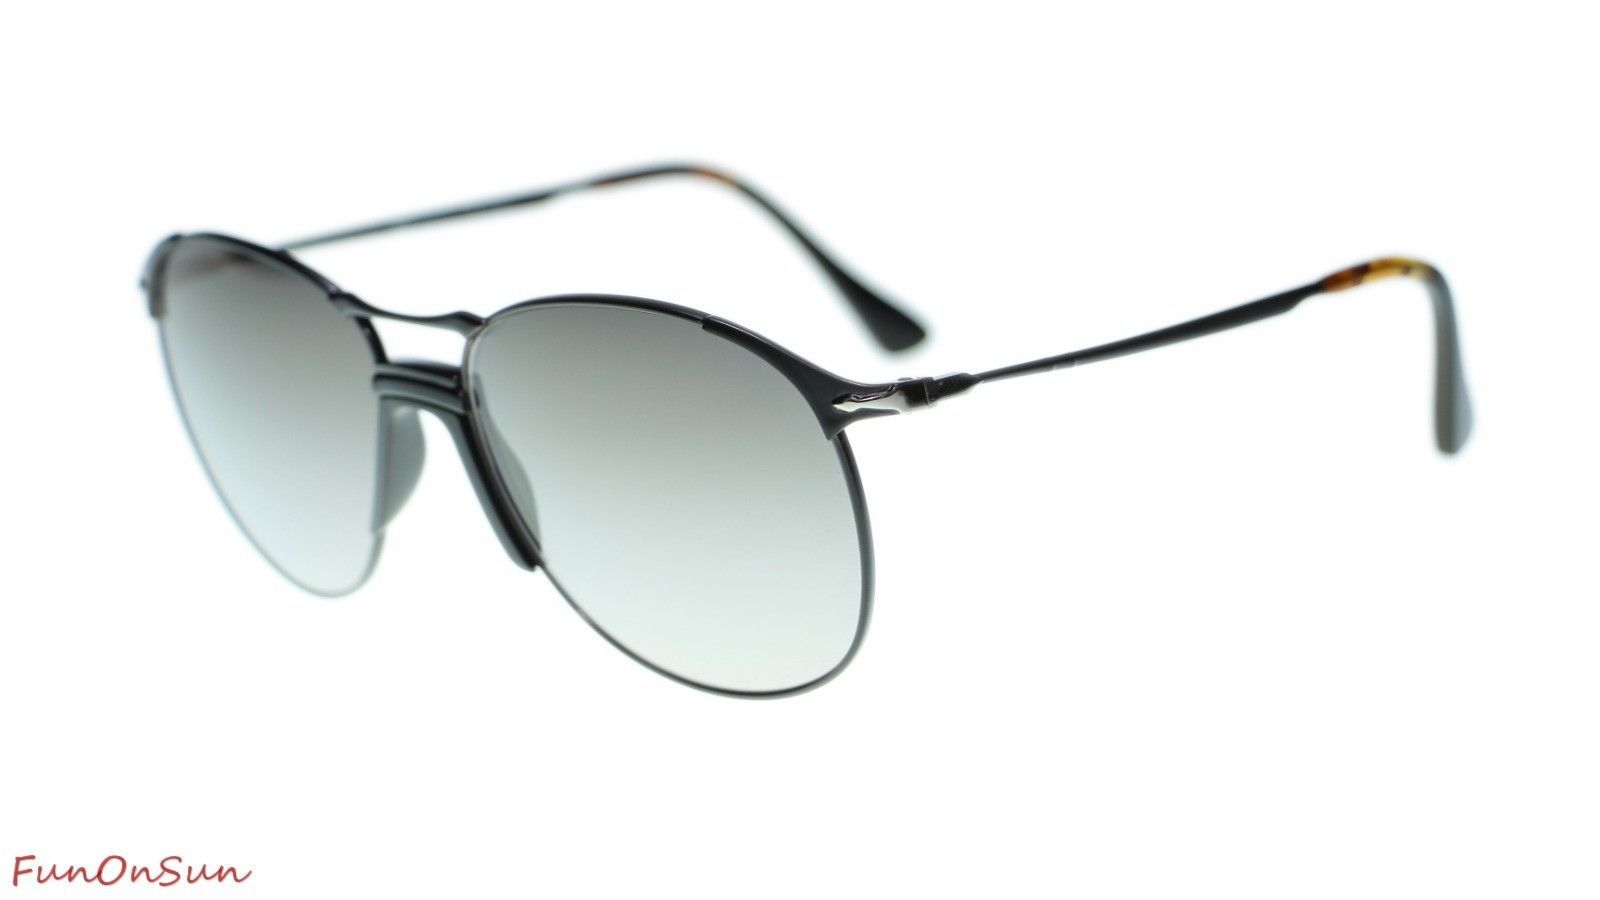 7098401ba7ae9 Persol Mens Sunglasses PO2649S 1078M3 and 12 similar items. 10